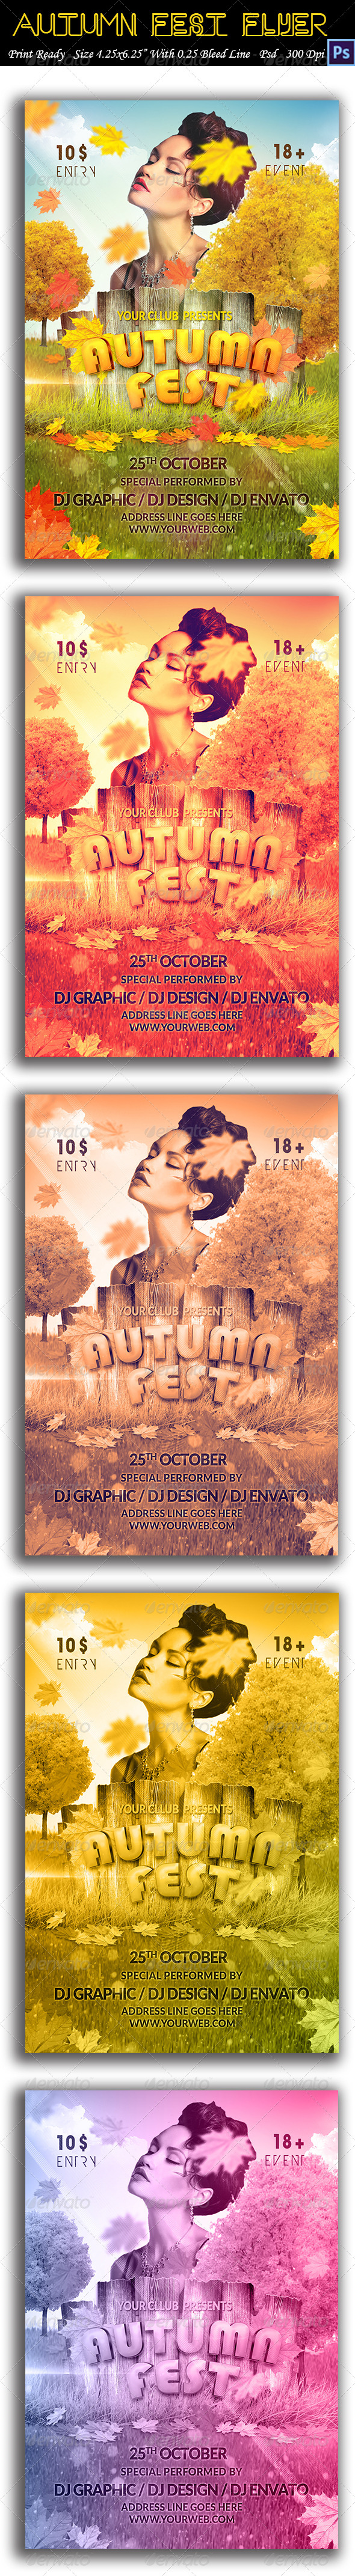 GraphicRiver Autumn Fest Flyer 8725802